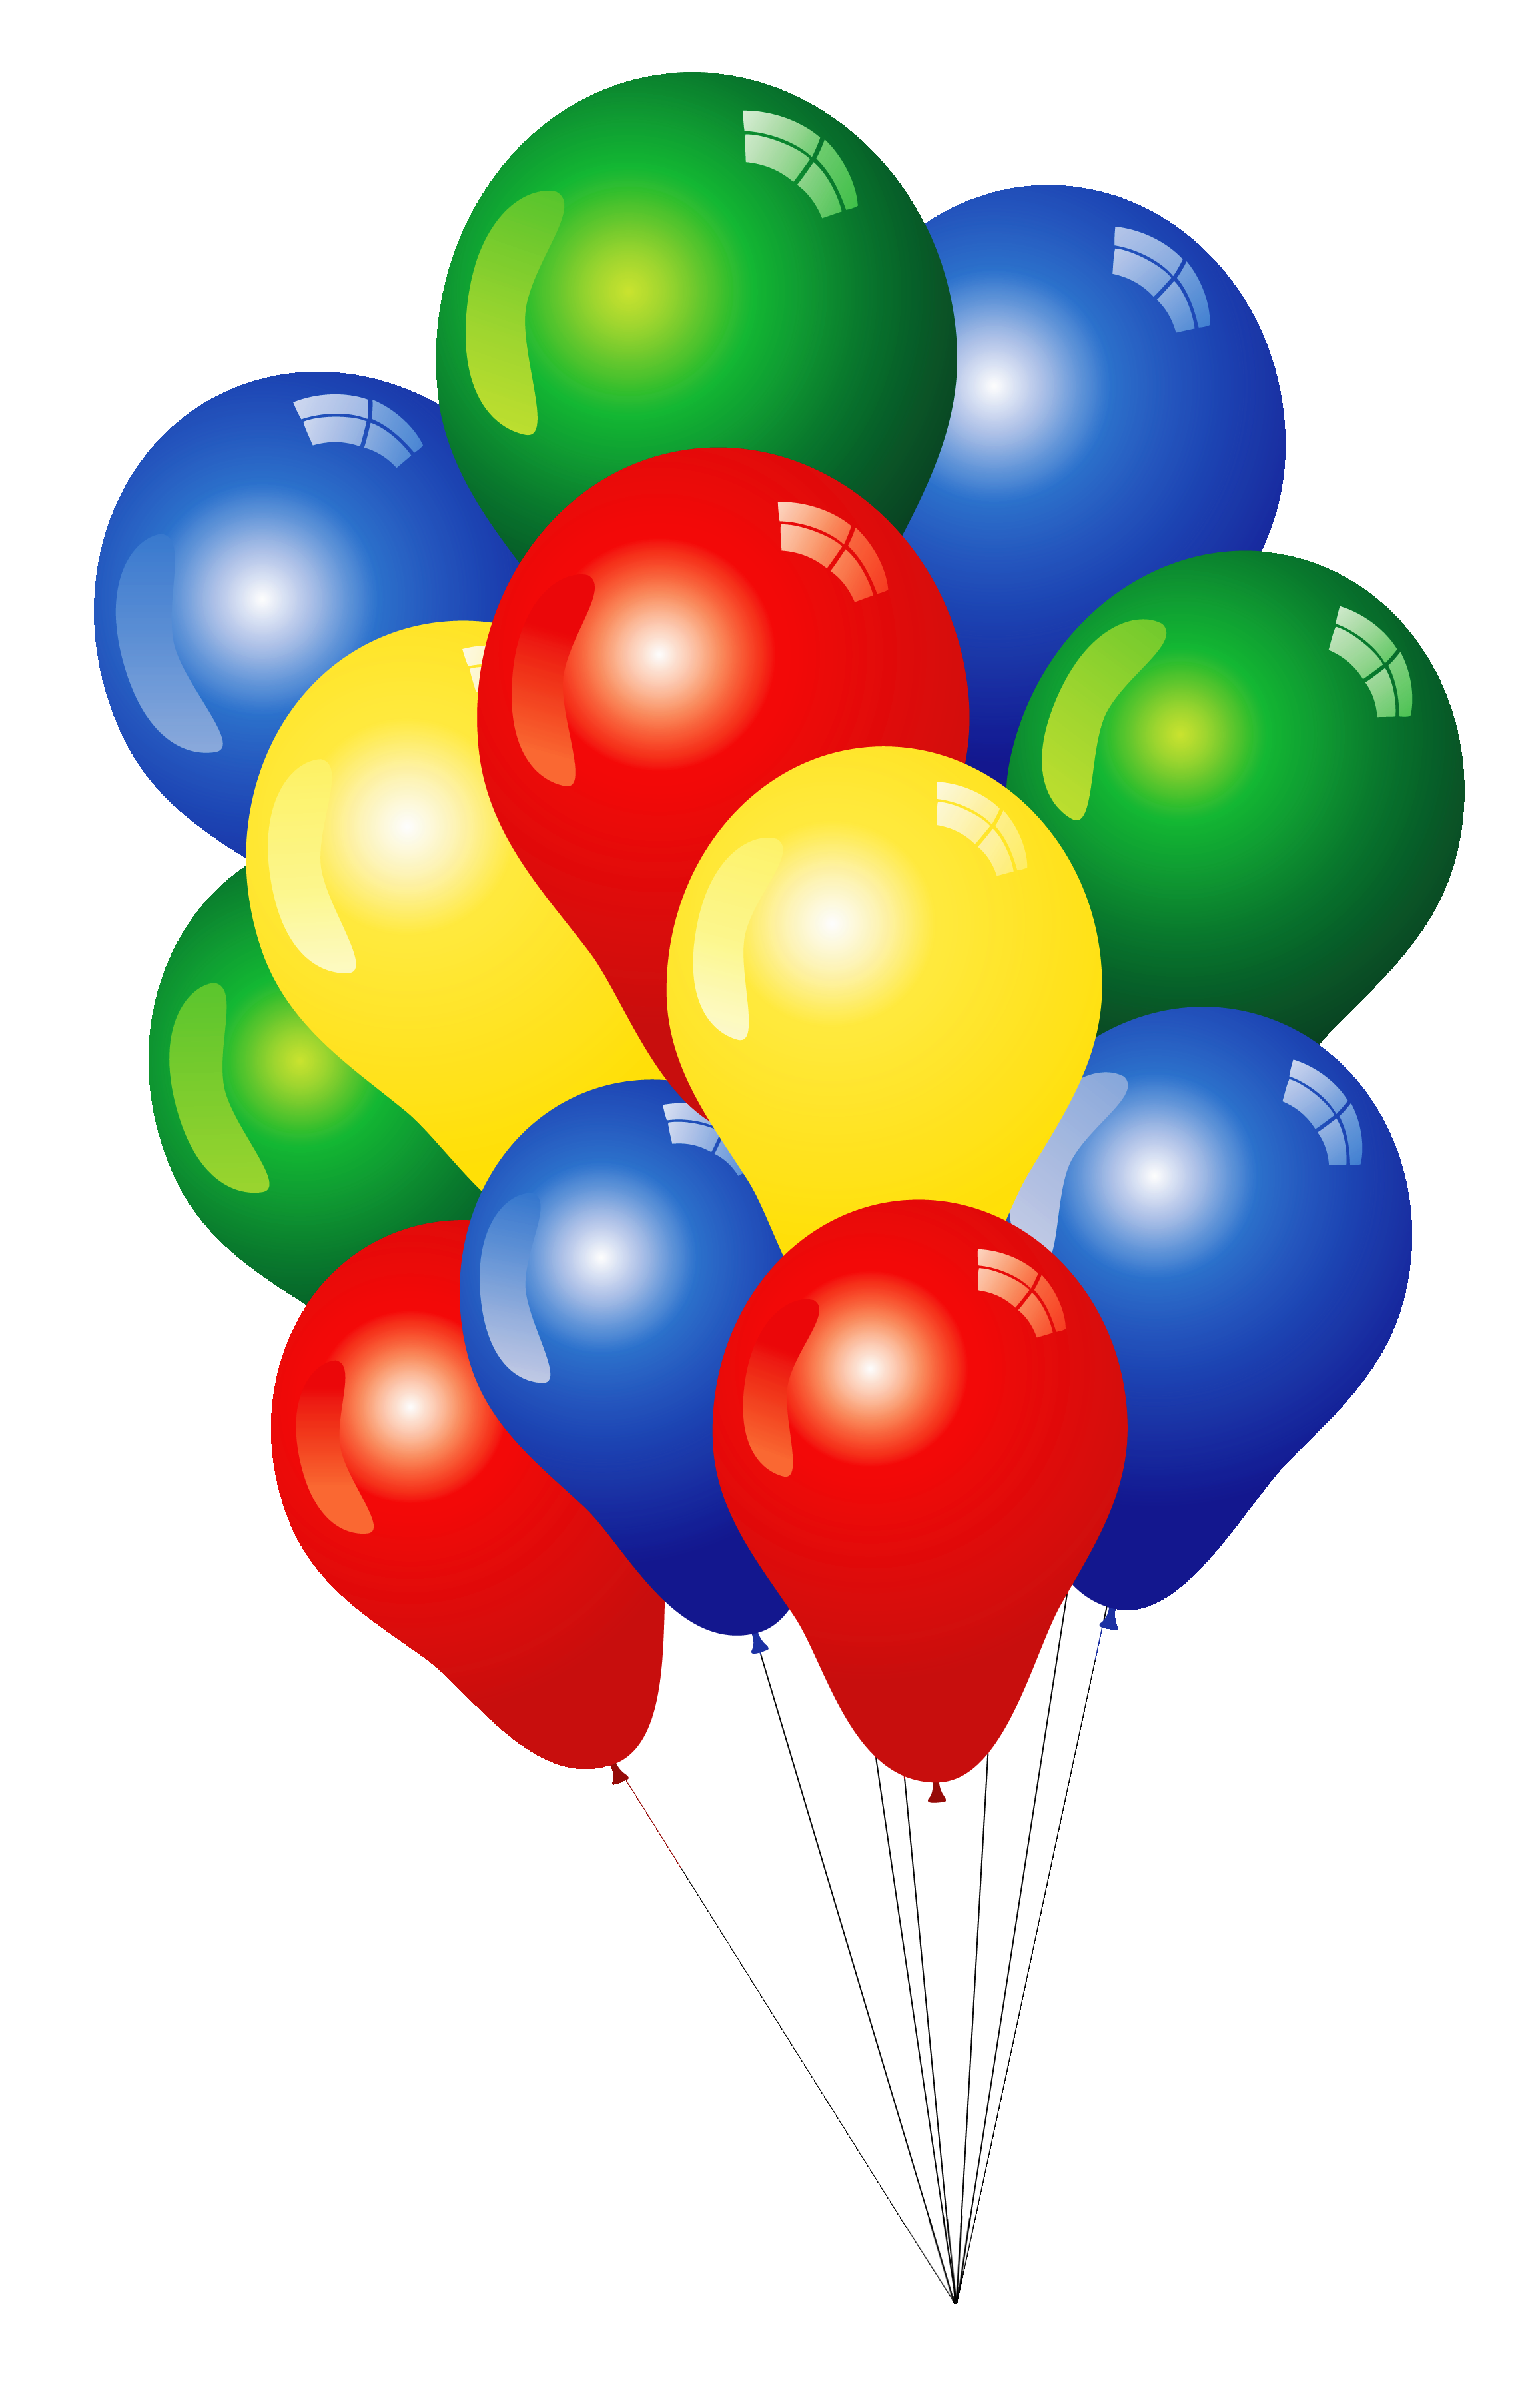 Free Birthday Balloon Images ~ Free balloon clip art cliparts